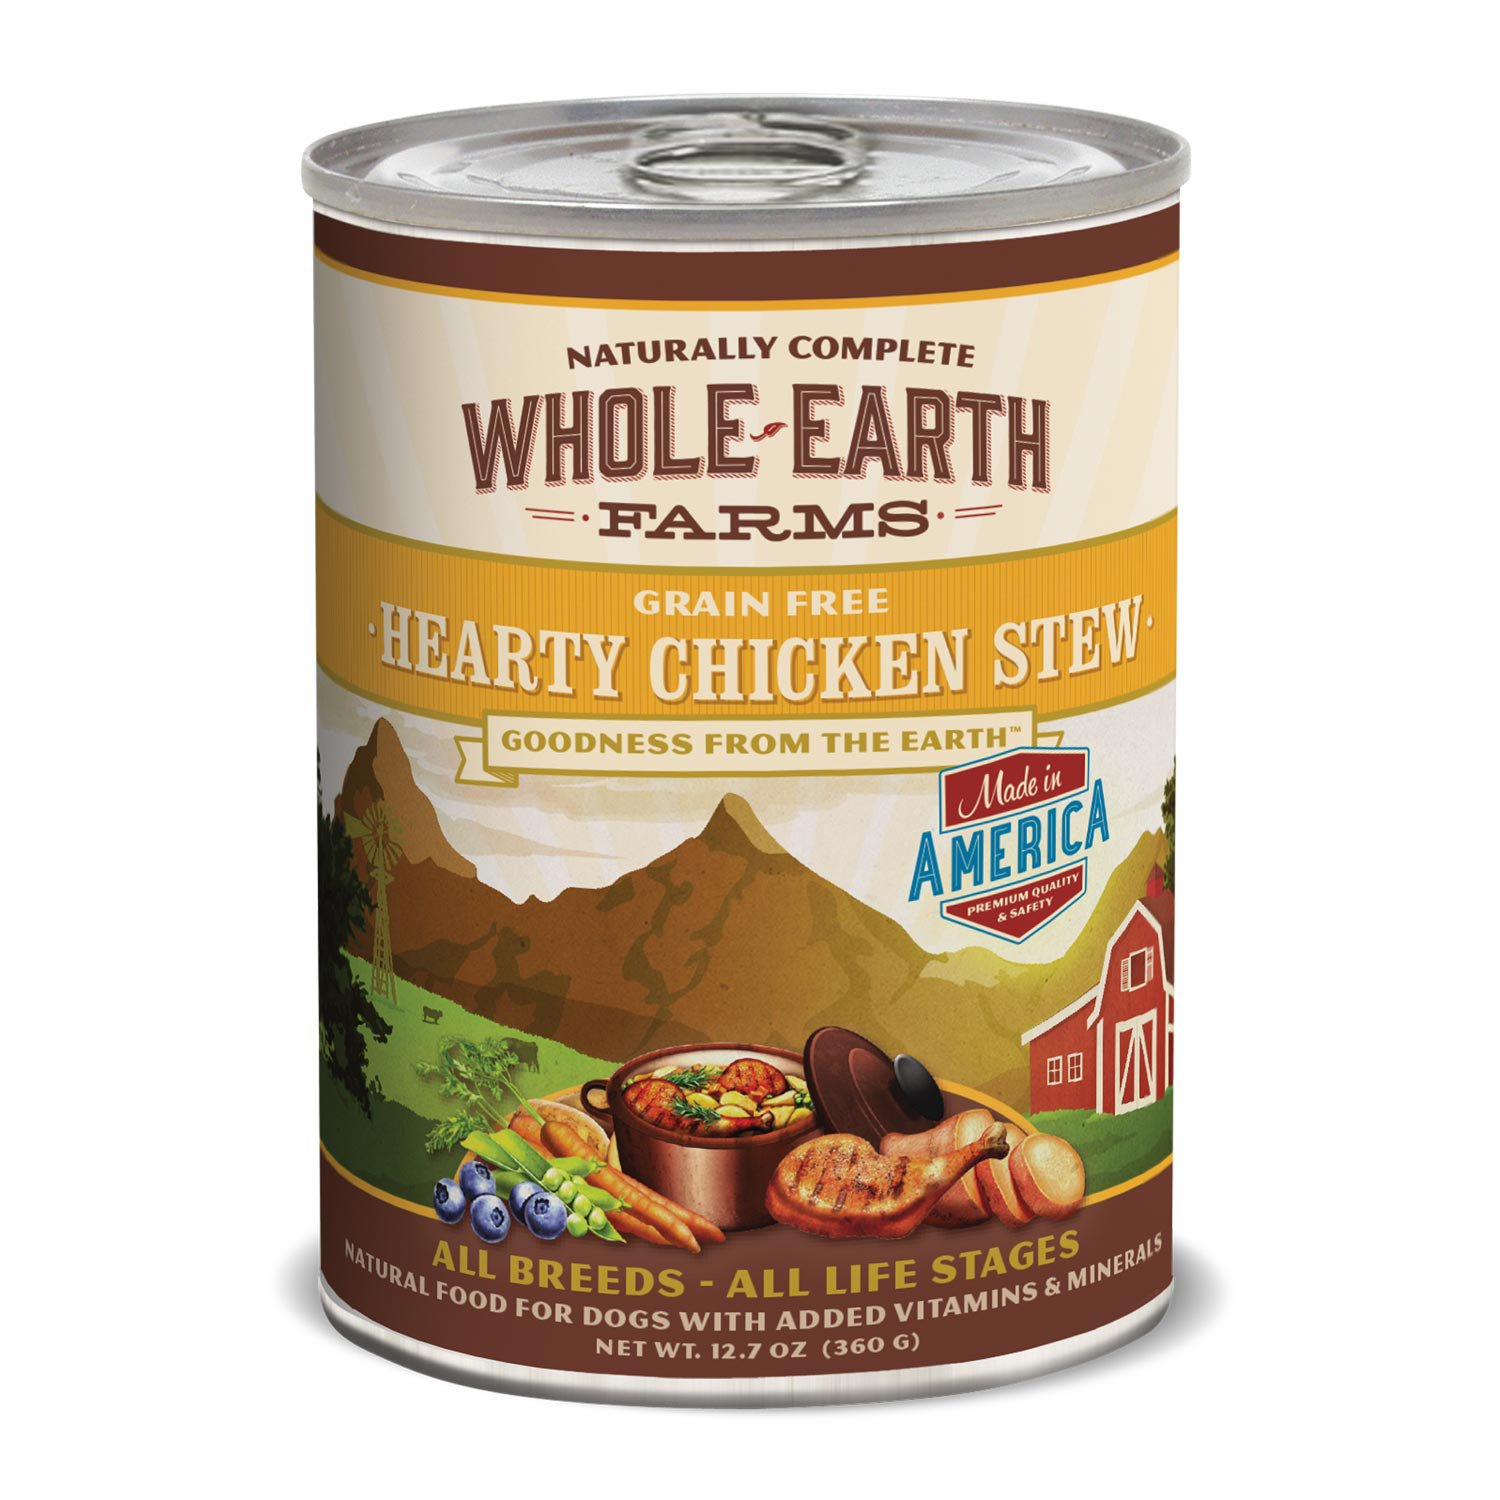 Whole Earth Farms Grain Free Hearty Chicken Stew Canned Dog Food